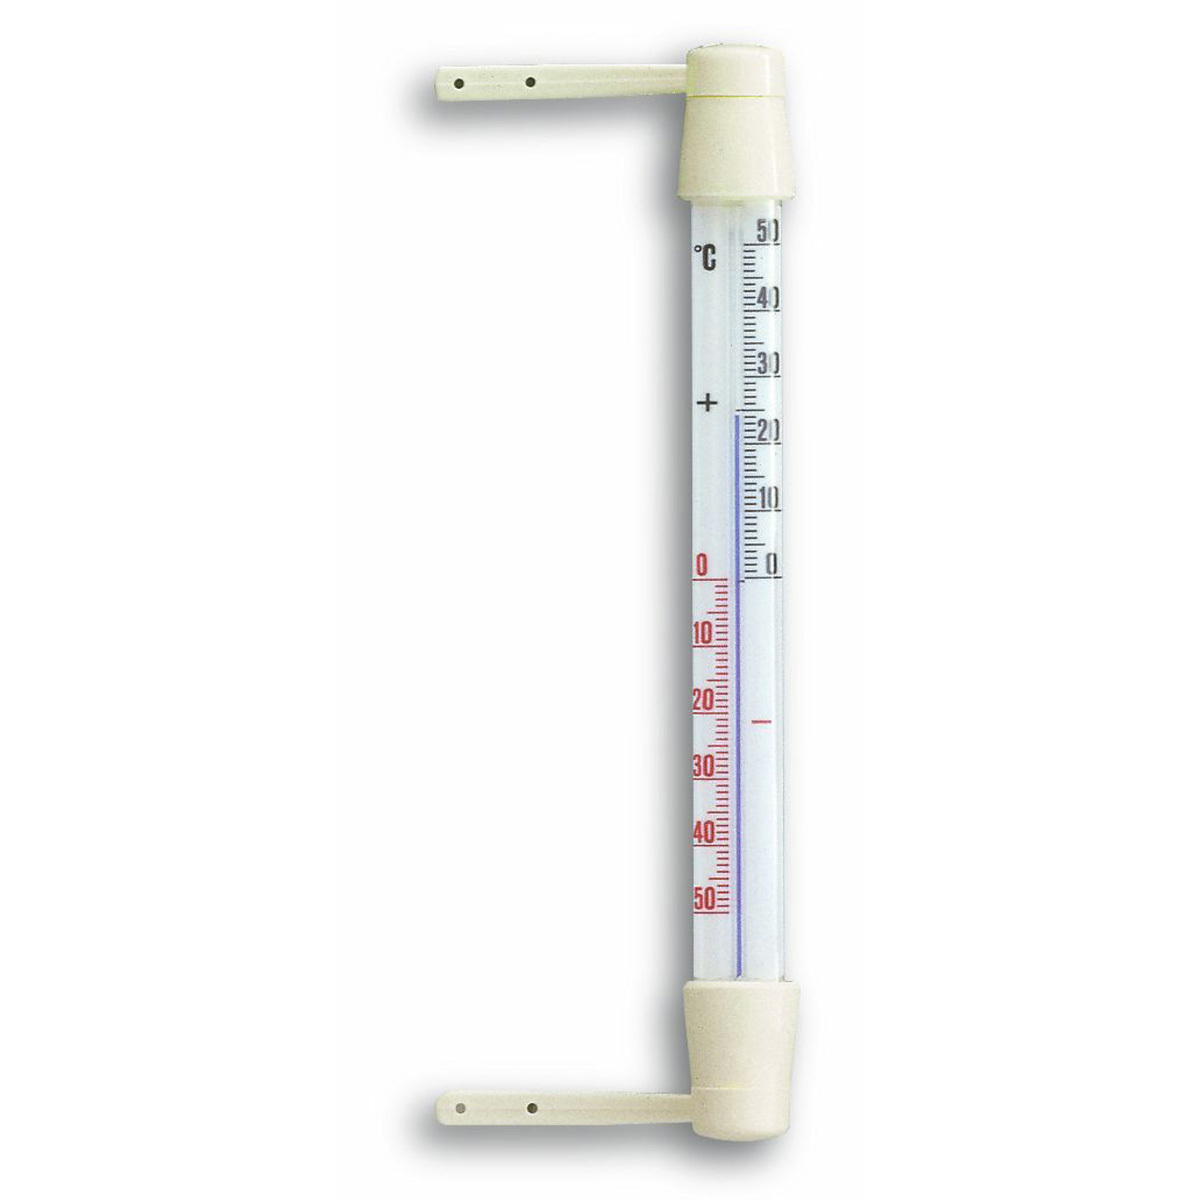 14-6007-analoges-fensterthermometer-1200x1200px.jpg